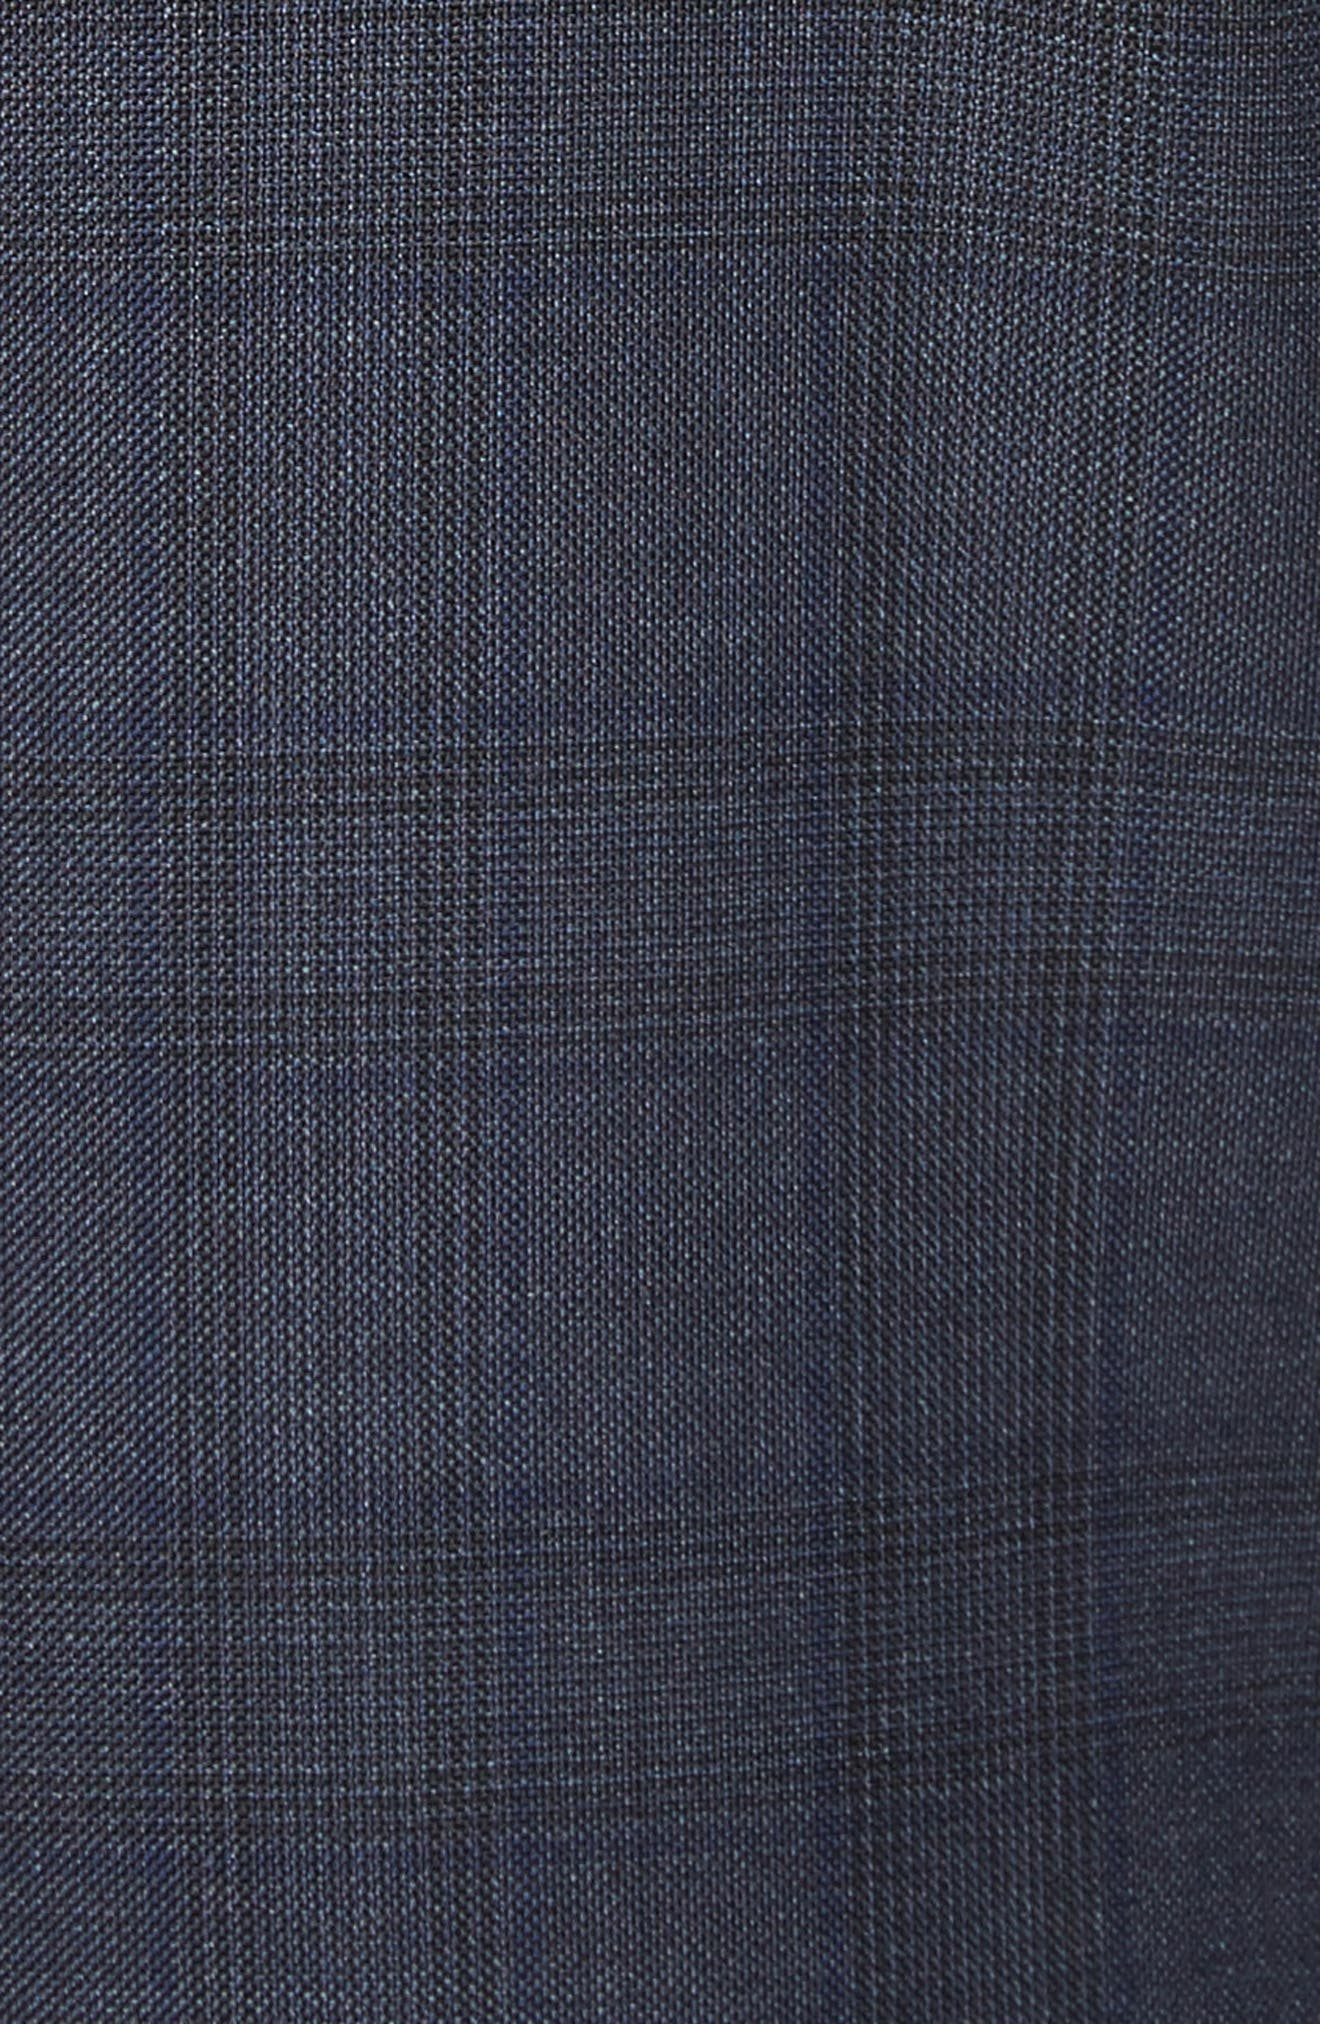 Classic Fit Check Wool Suit,                             Alternate thumbnail 7, color,                             416